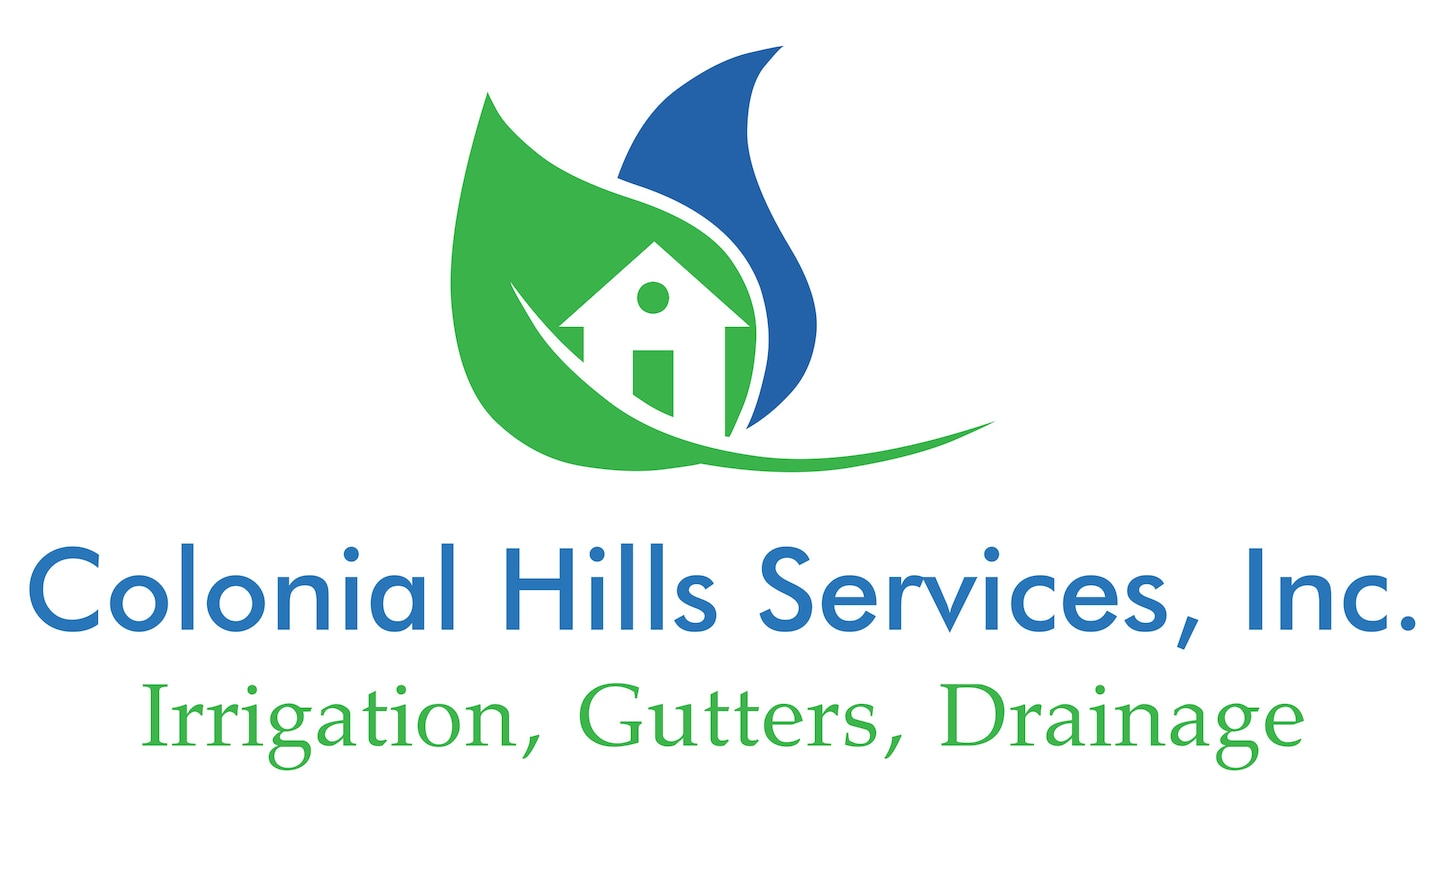 Colonial Hills Services, Inc. logo